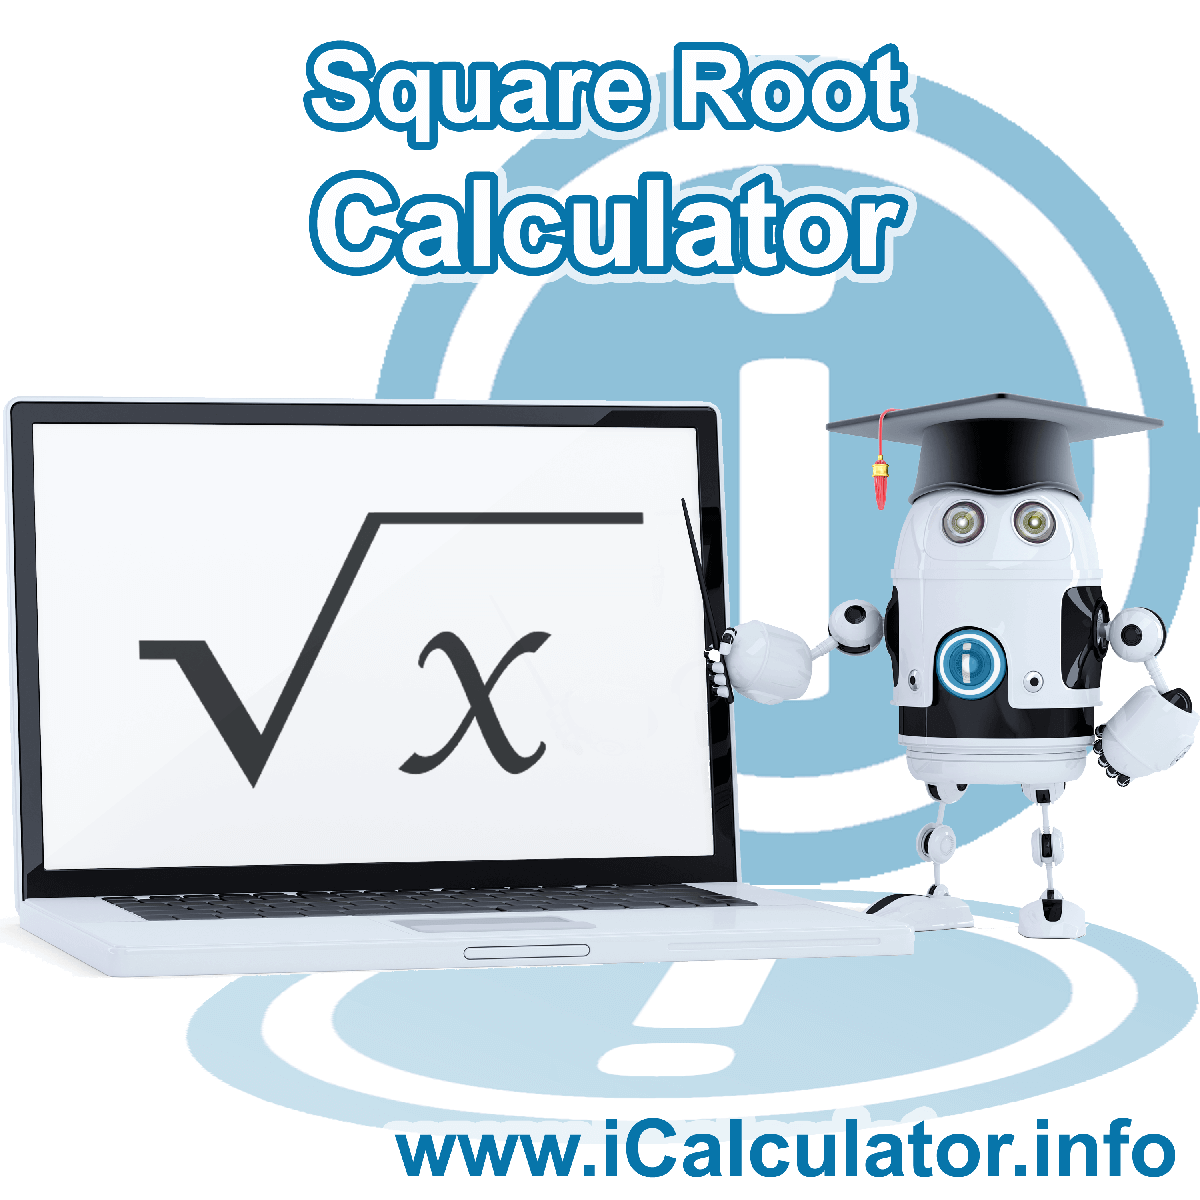 Square Root Calculator. This image shows the properties and Square Root formula for the Square Root Calculator